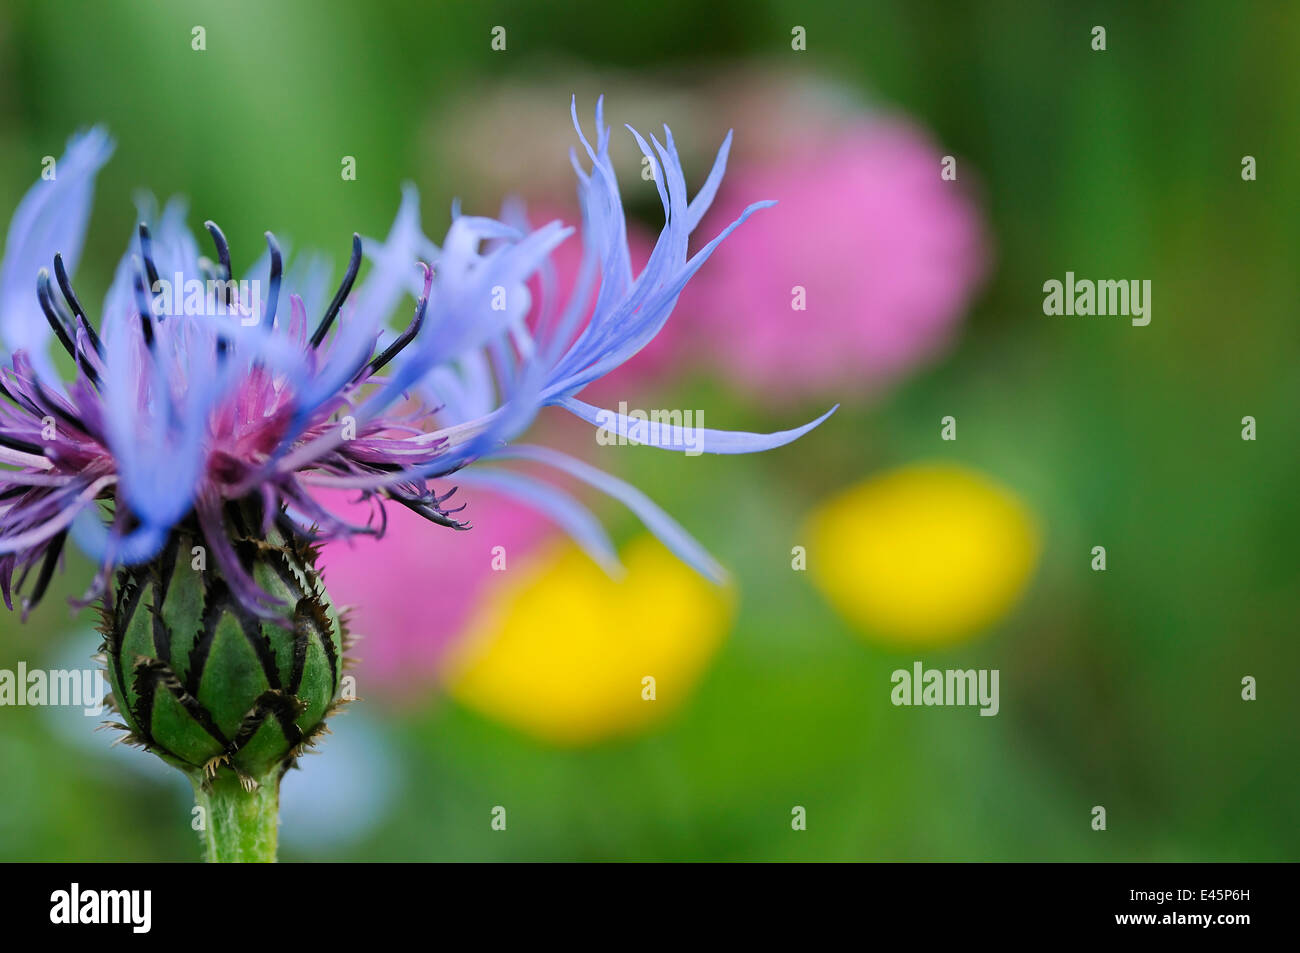 Mountain cornflower (Centaurea montana) flower, Liechtenstein, June 2009. BOOK &  WWE OUTDOOR EXHIBITION. NOT - Stock Image